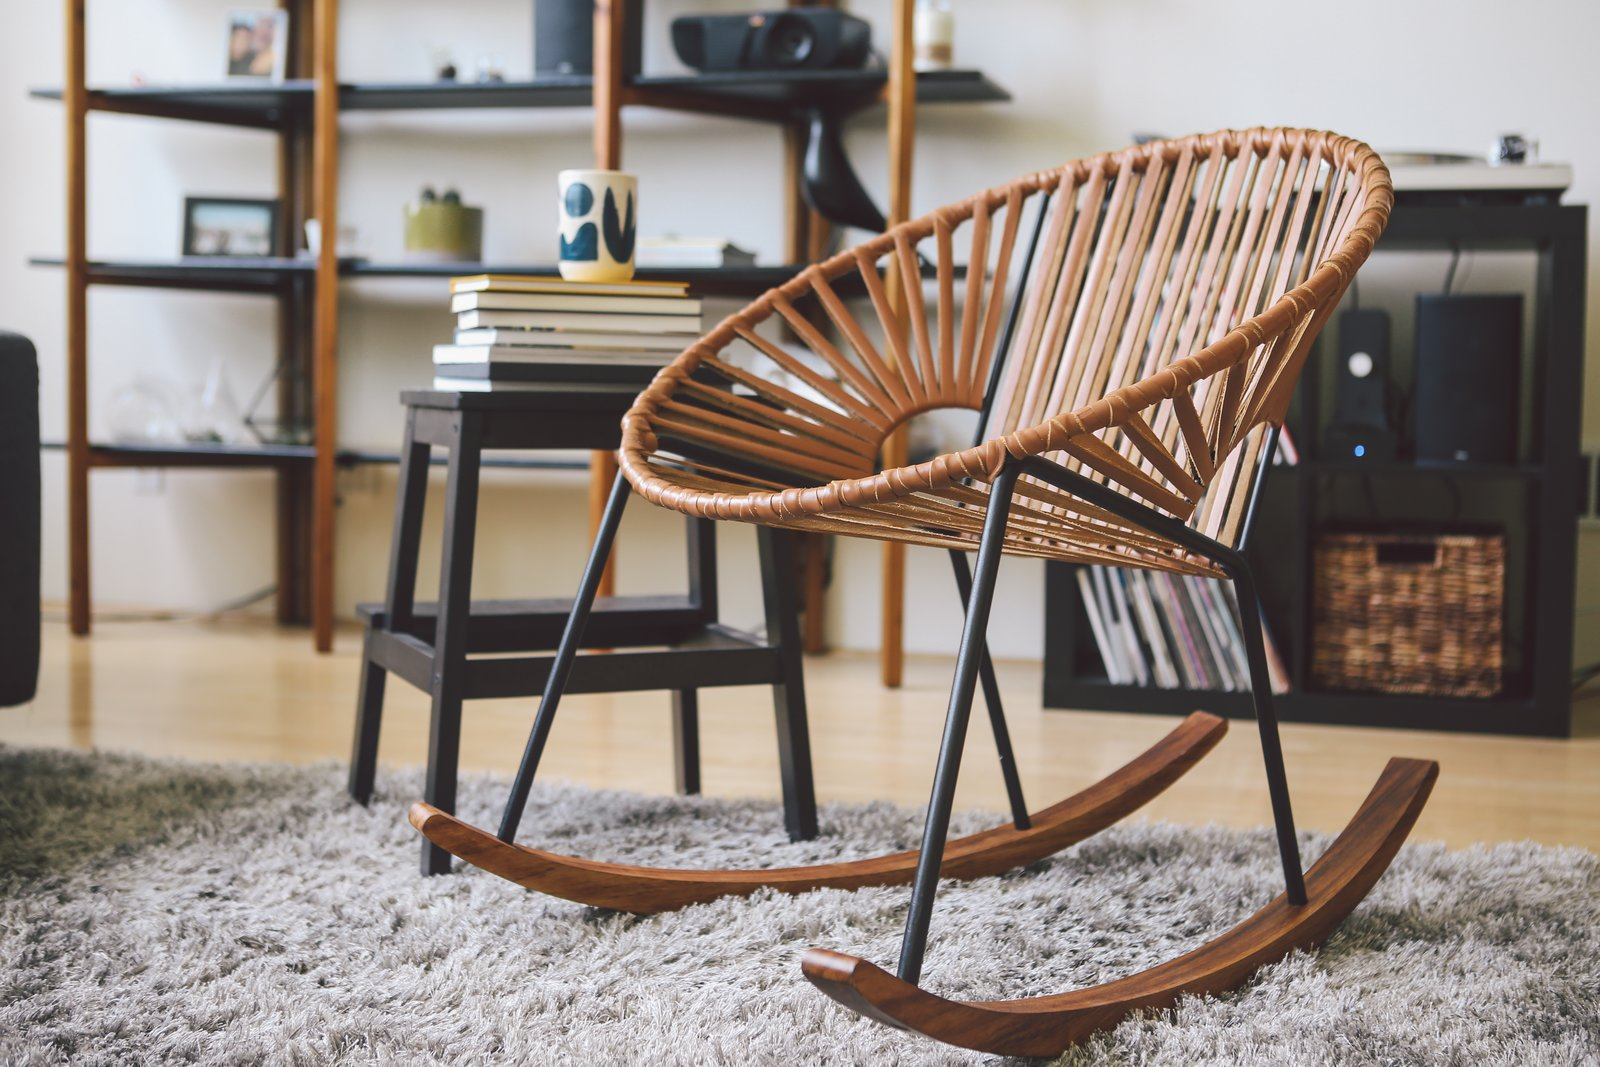 Admirable Rocking Chair 535 Russian Style Carved Wood Skeleton Machost Co Dining Chair Design Ideas Machostcouk